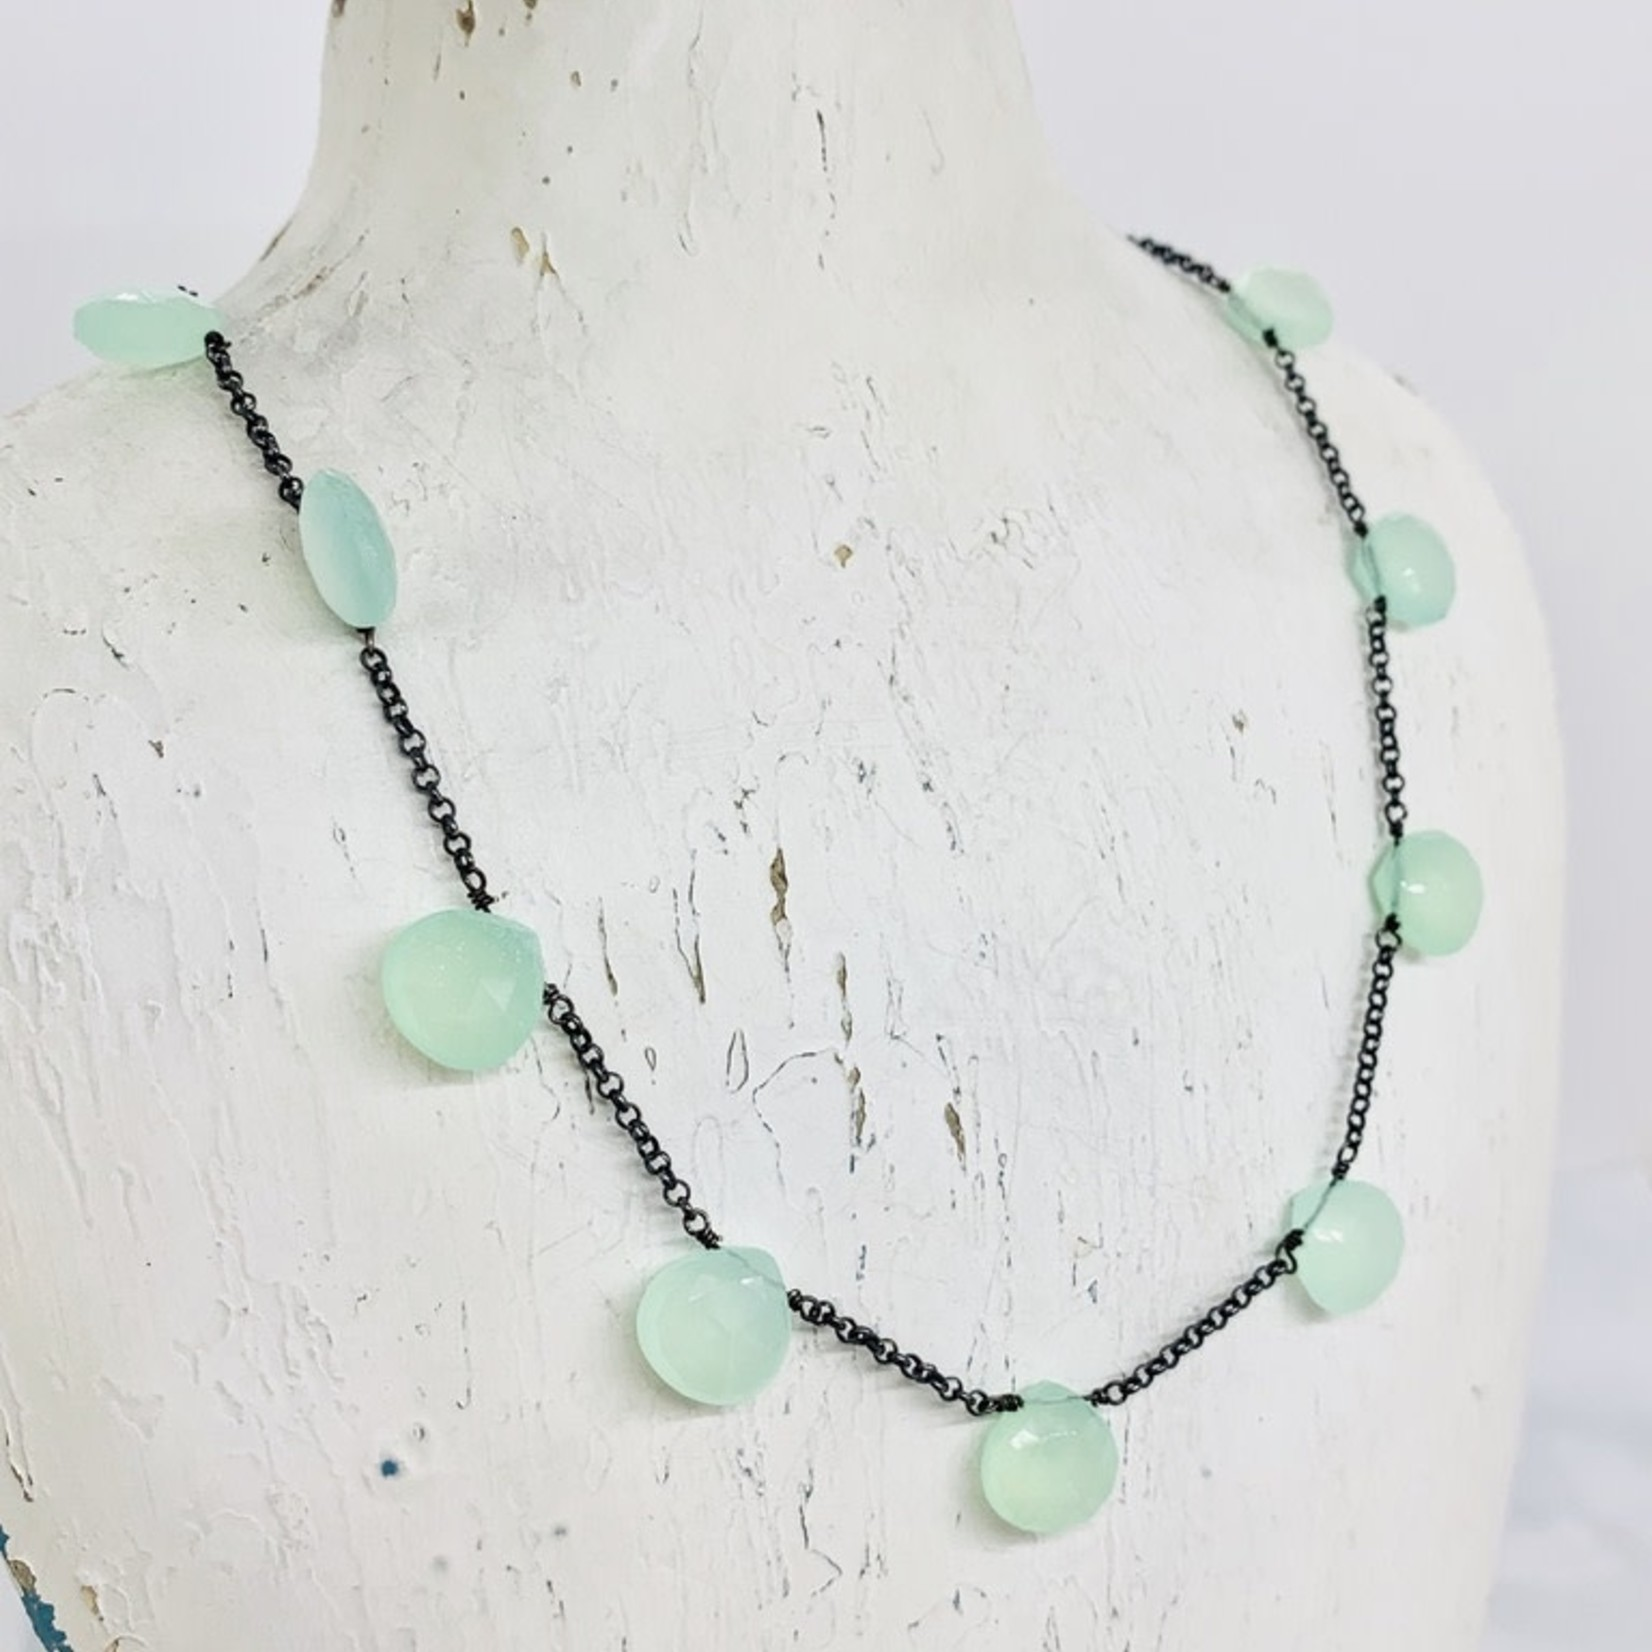 Handmade necklace with oxidized chain, 9 chalcedony briolette